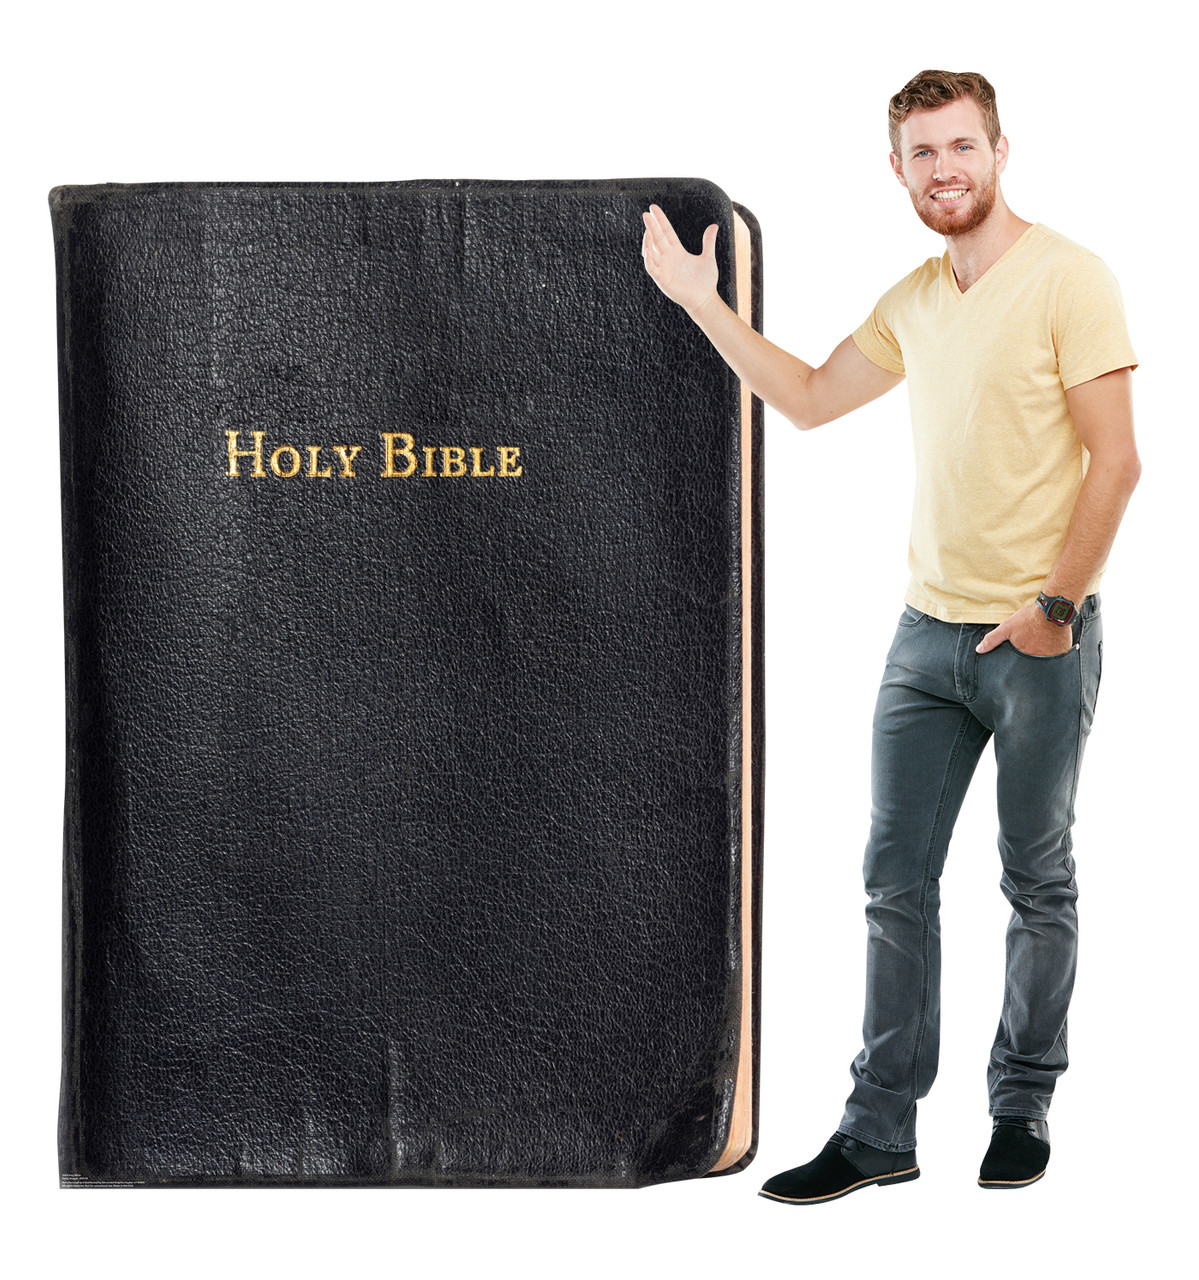 Life-size cardboard standee of The Holy Bible Lifesize